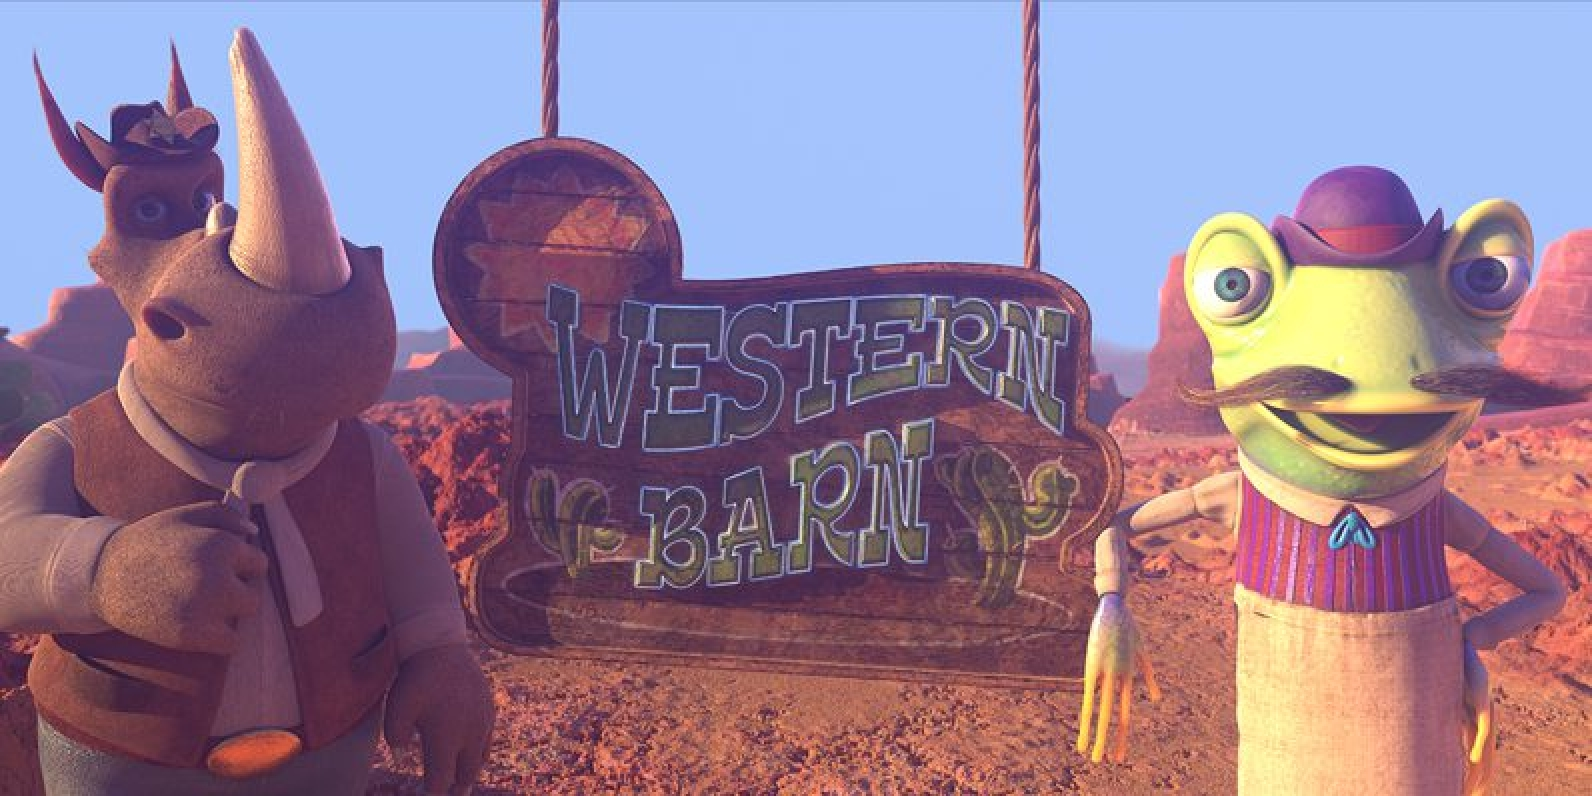 Se Western Barn Online Slot Demo Game, Gamshy